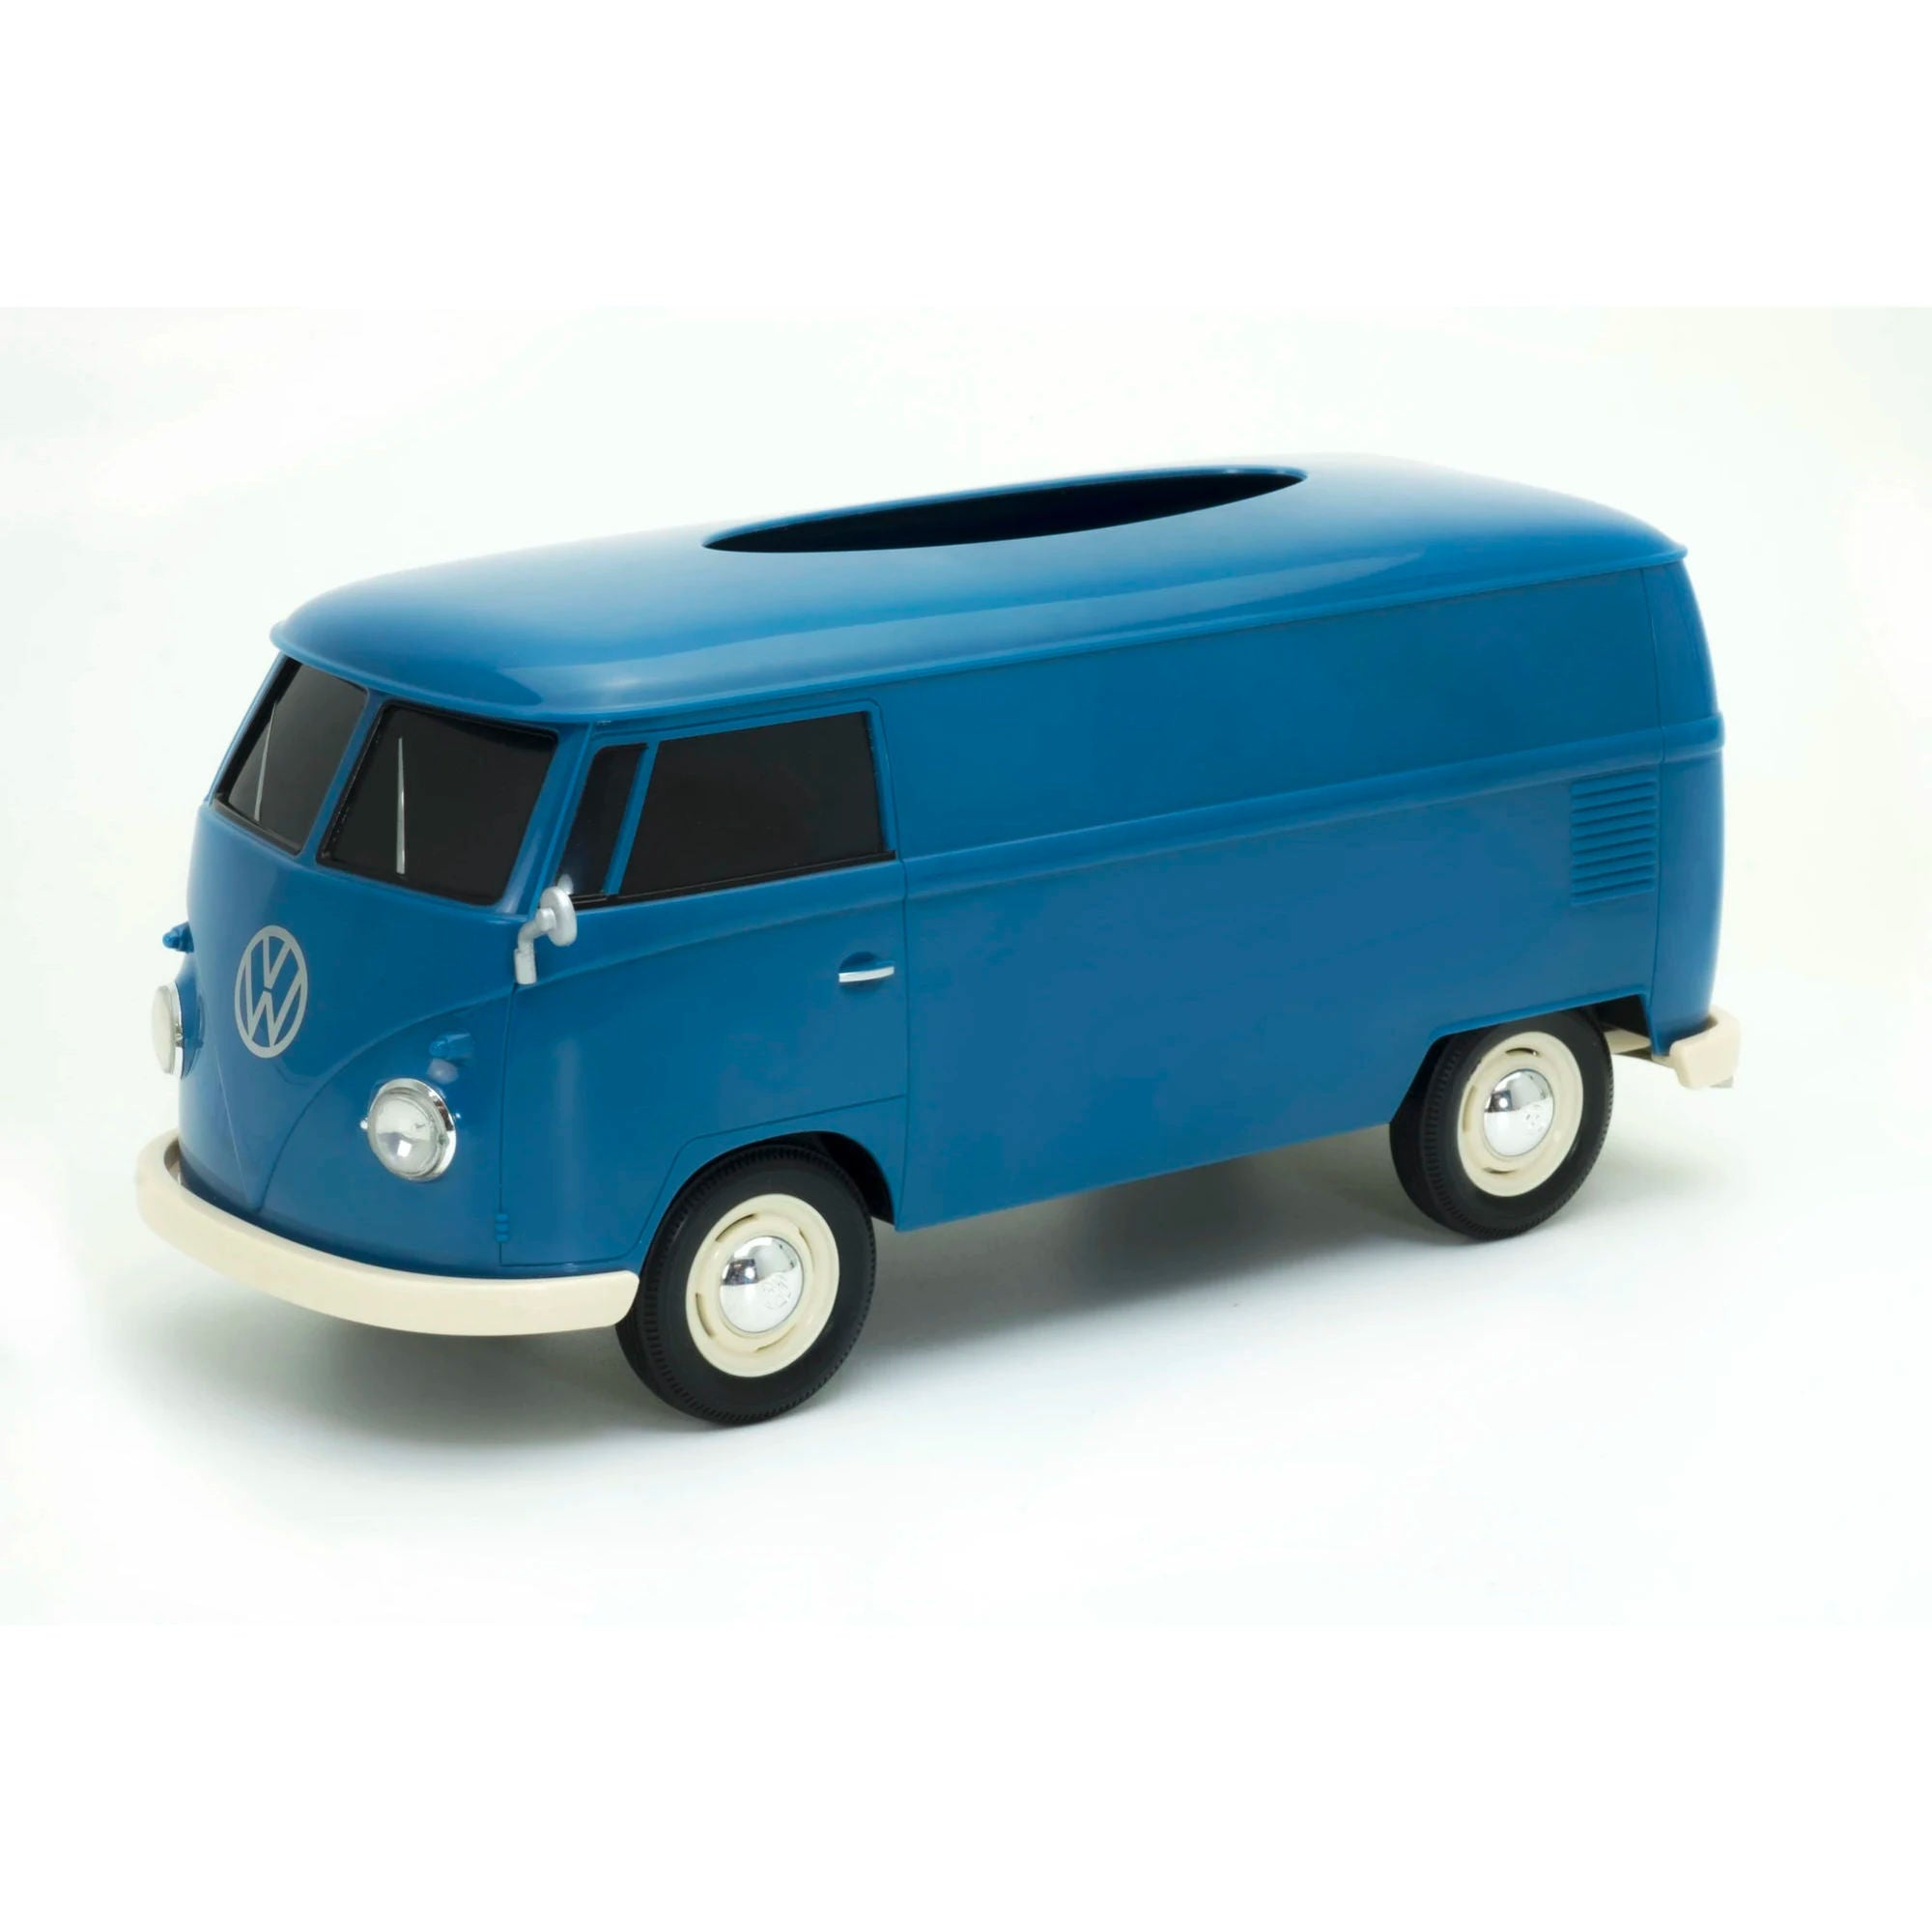 Volkswagen VW T1 Bue 1:16 Tissue Box , Blue